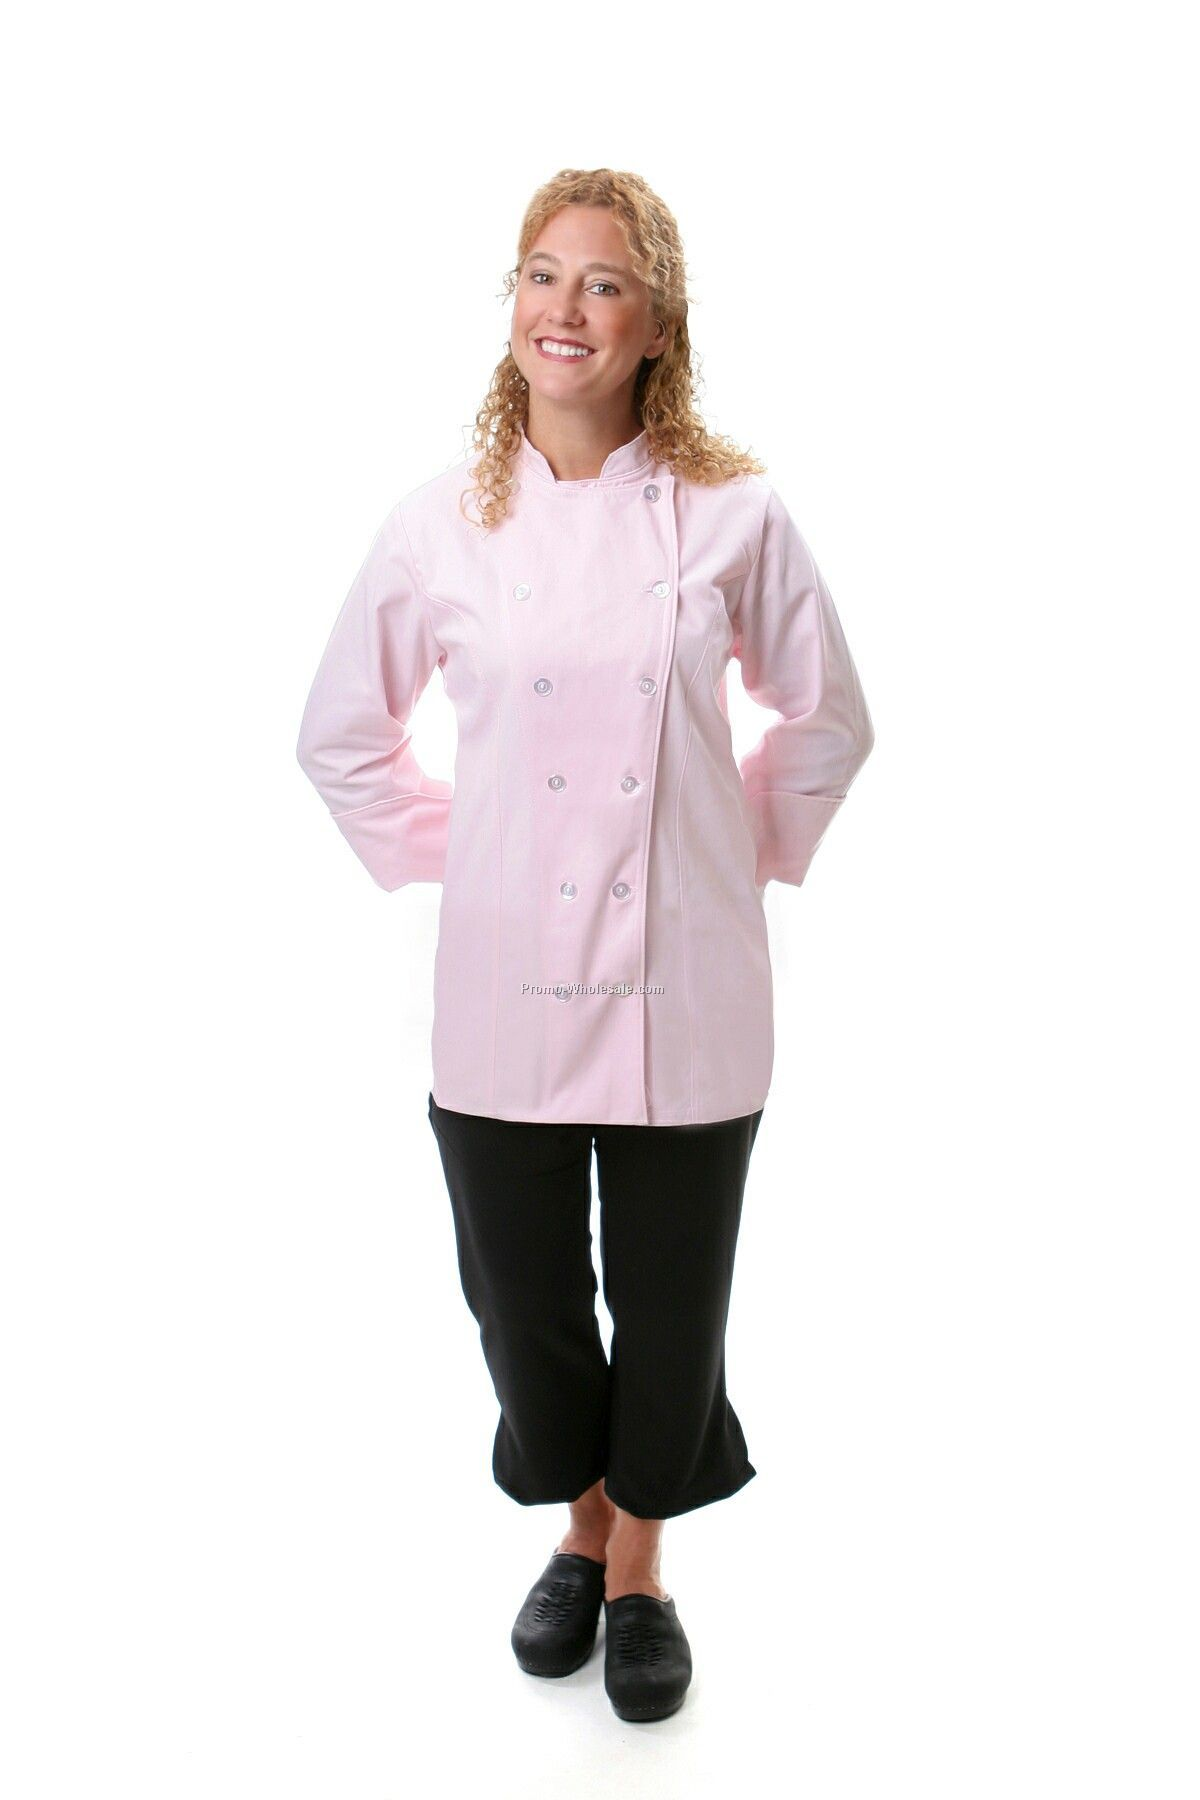 Ladies' Fitted Chef Coat - Pink (X-large)